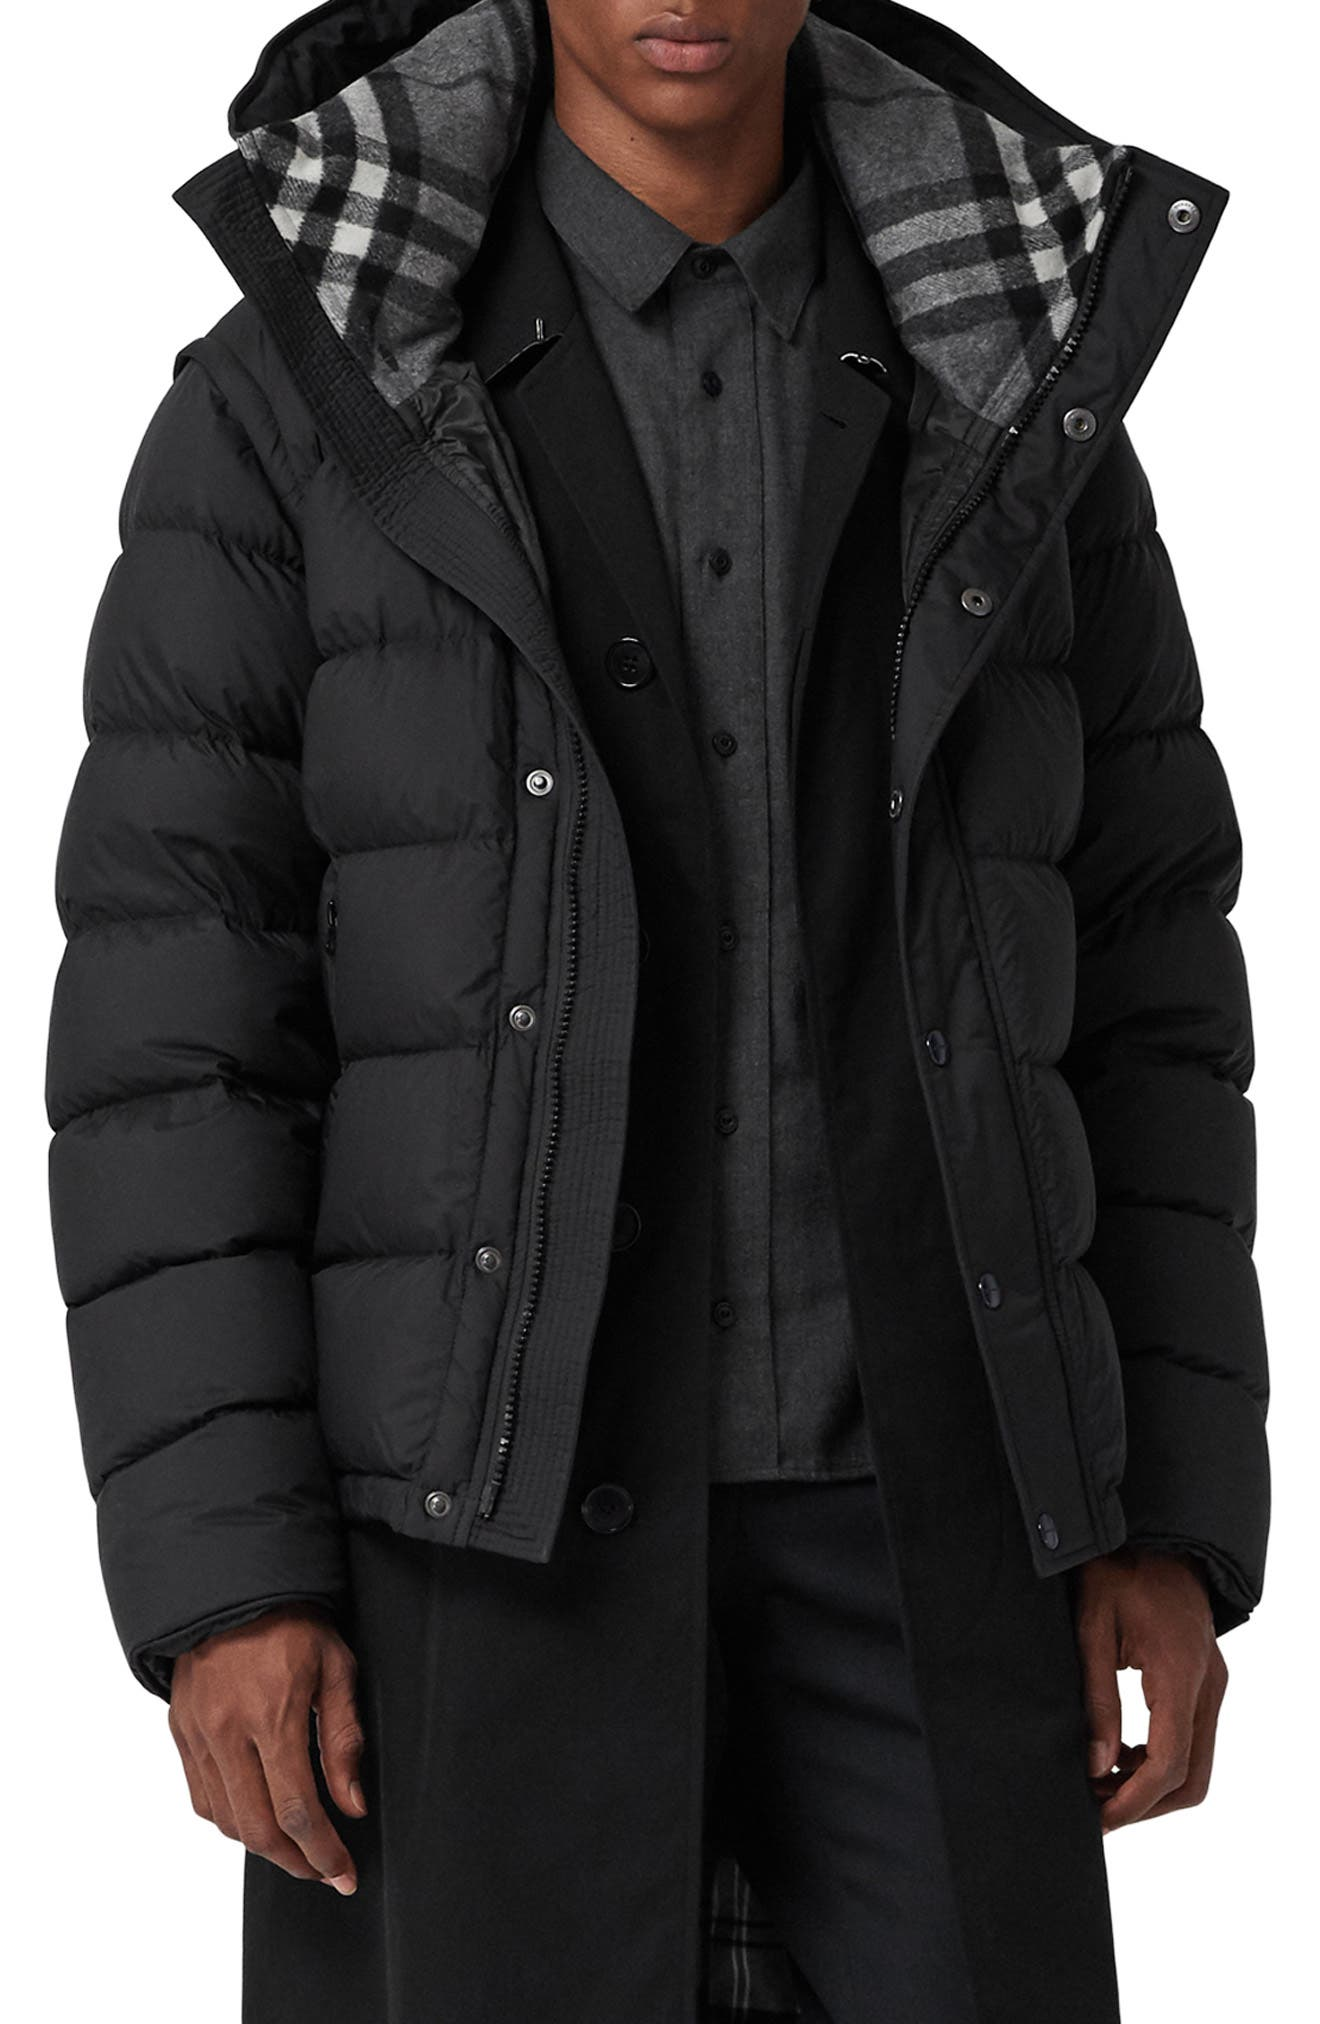 Hartley Hybrid Jacket with Detachable Sleeves,                             Main thumbnail 1, color,                             BLACK